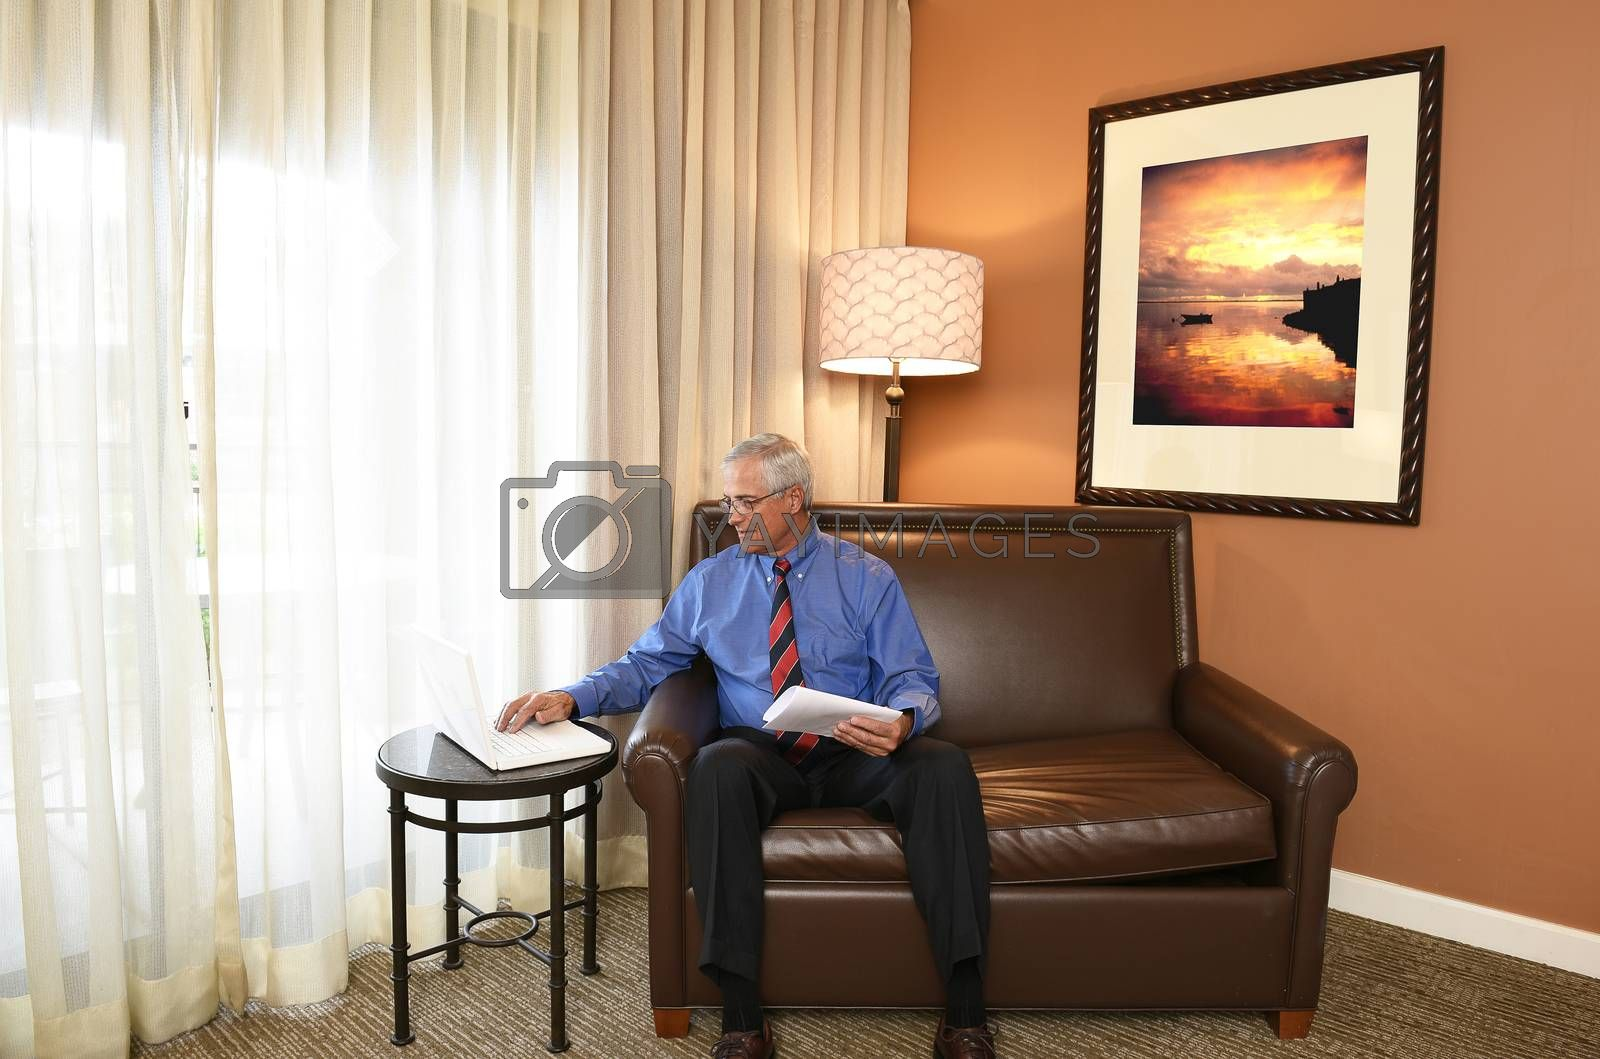 A senior businessman seated on the couch of his hotel room working on his laptop computer.